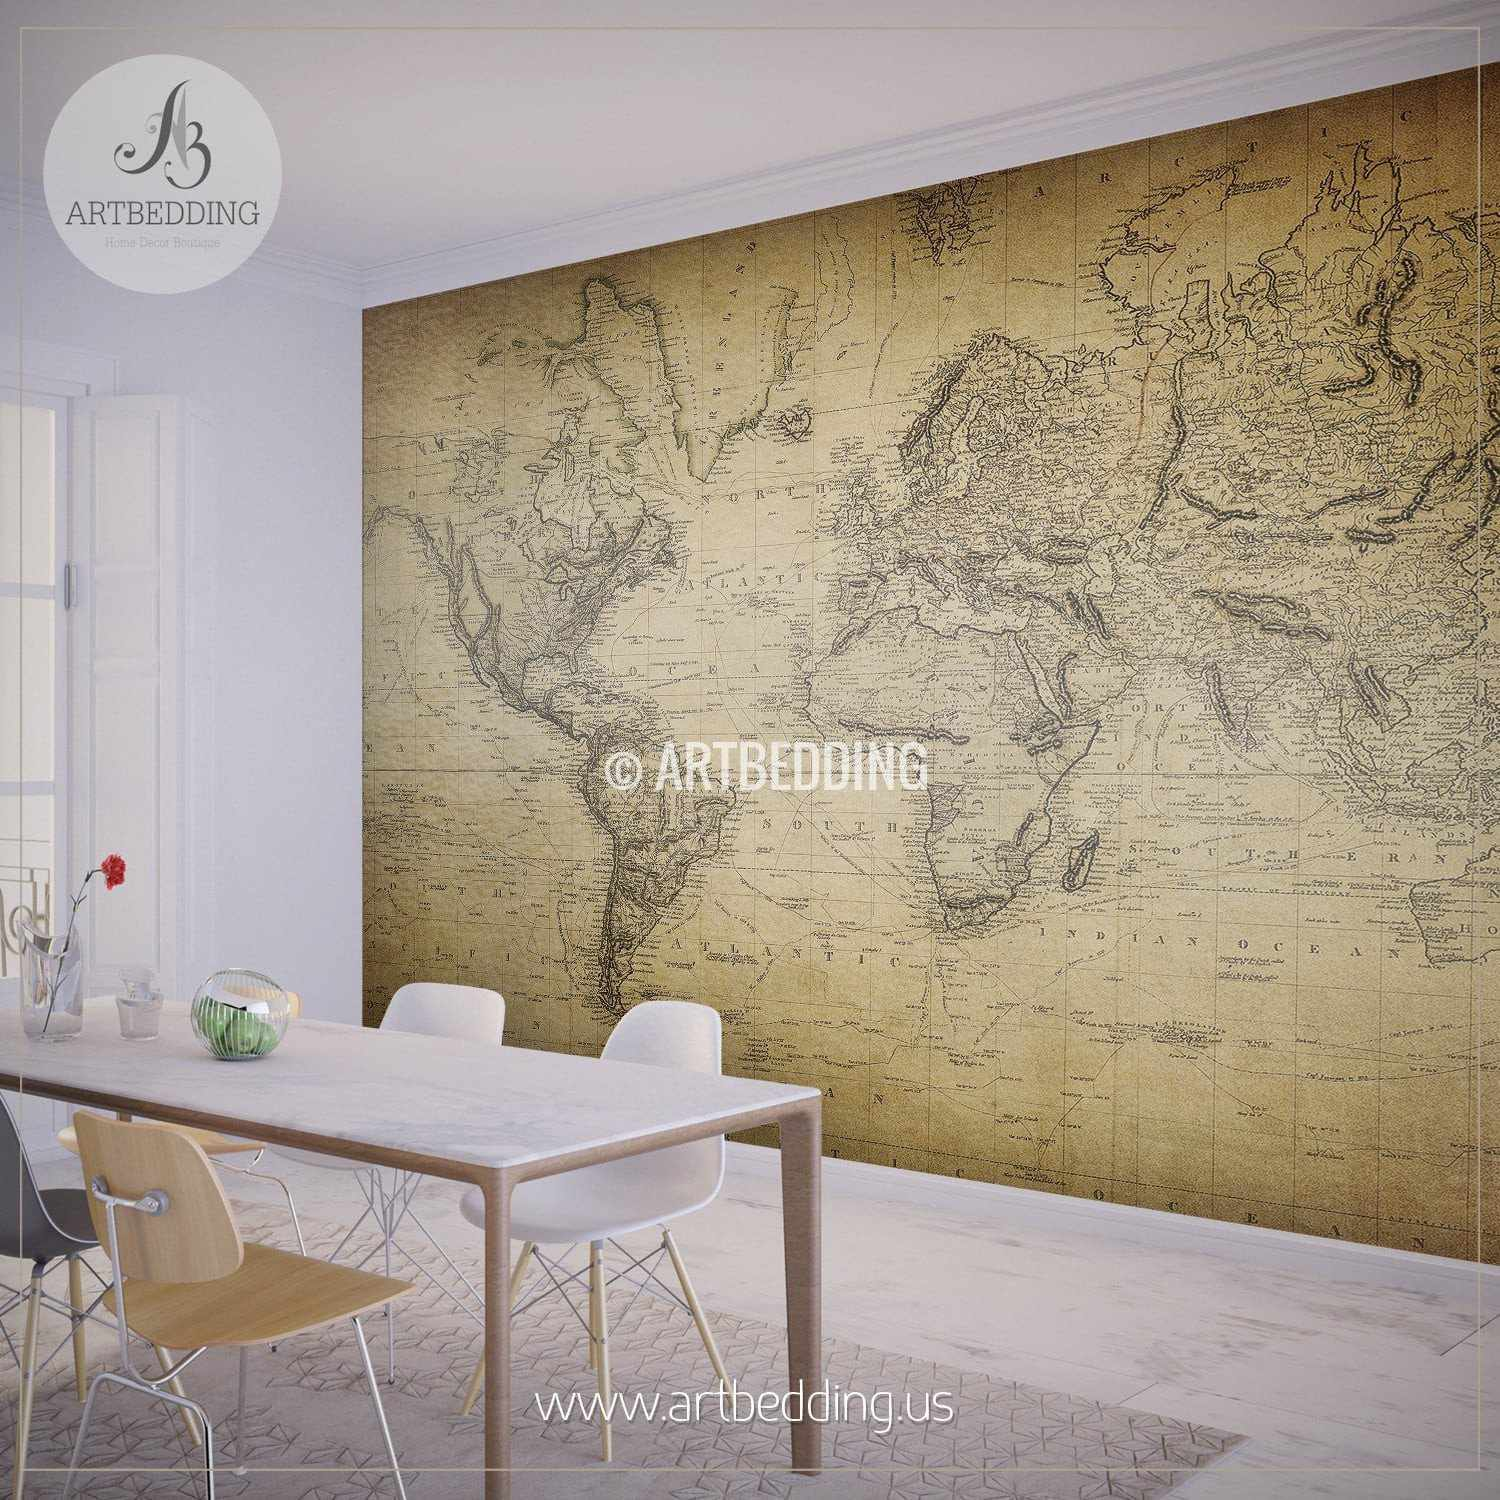 ... Vintage World Map From 1814 Wall Mural, Self Adhesive Peel U0026 Stick  Photo Mural, ... Part 63